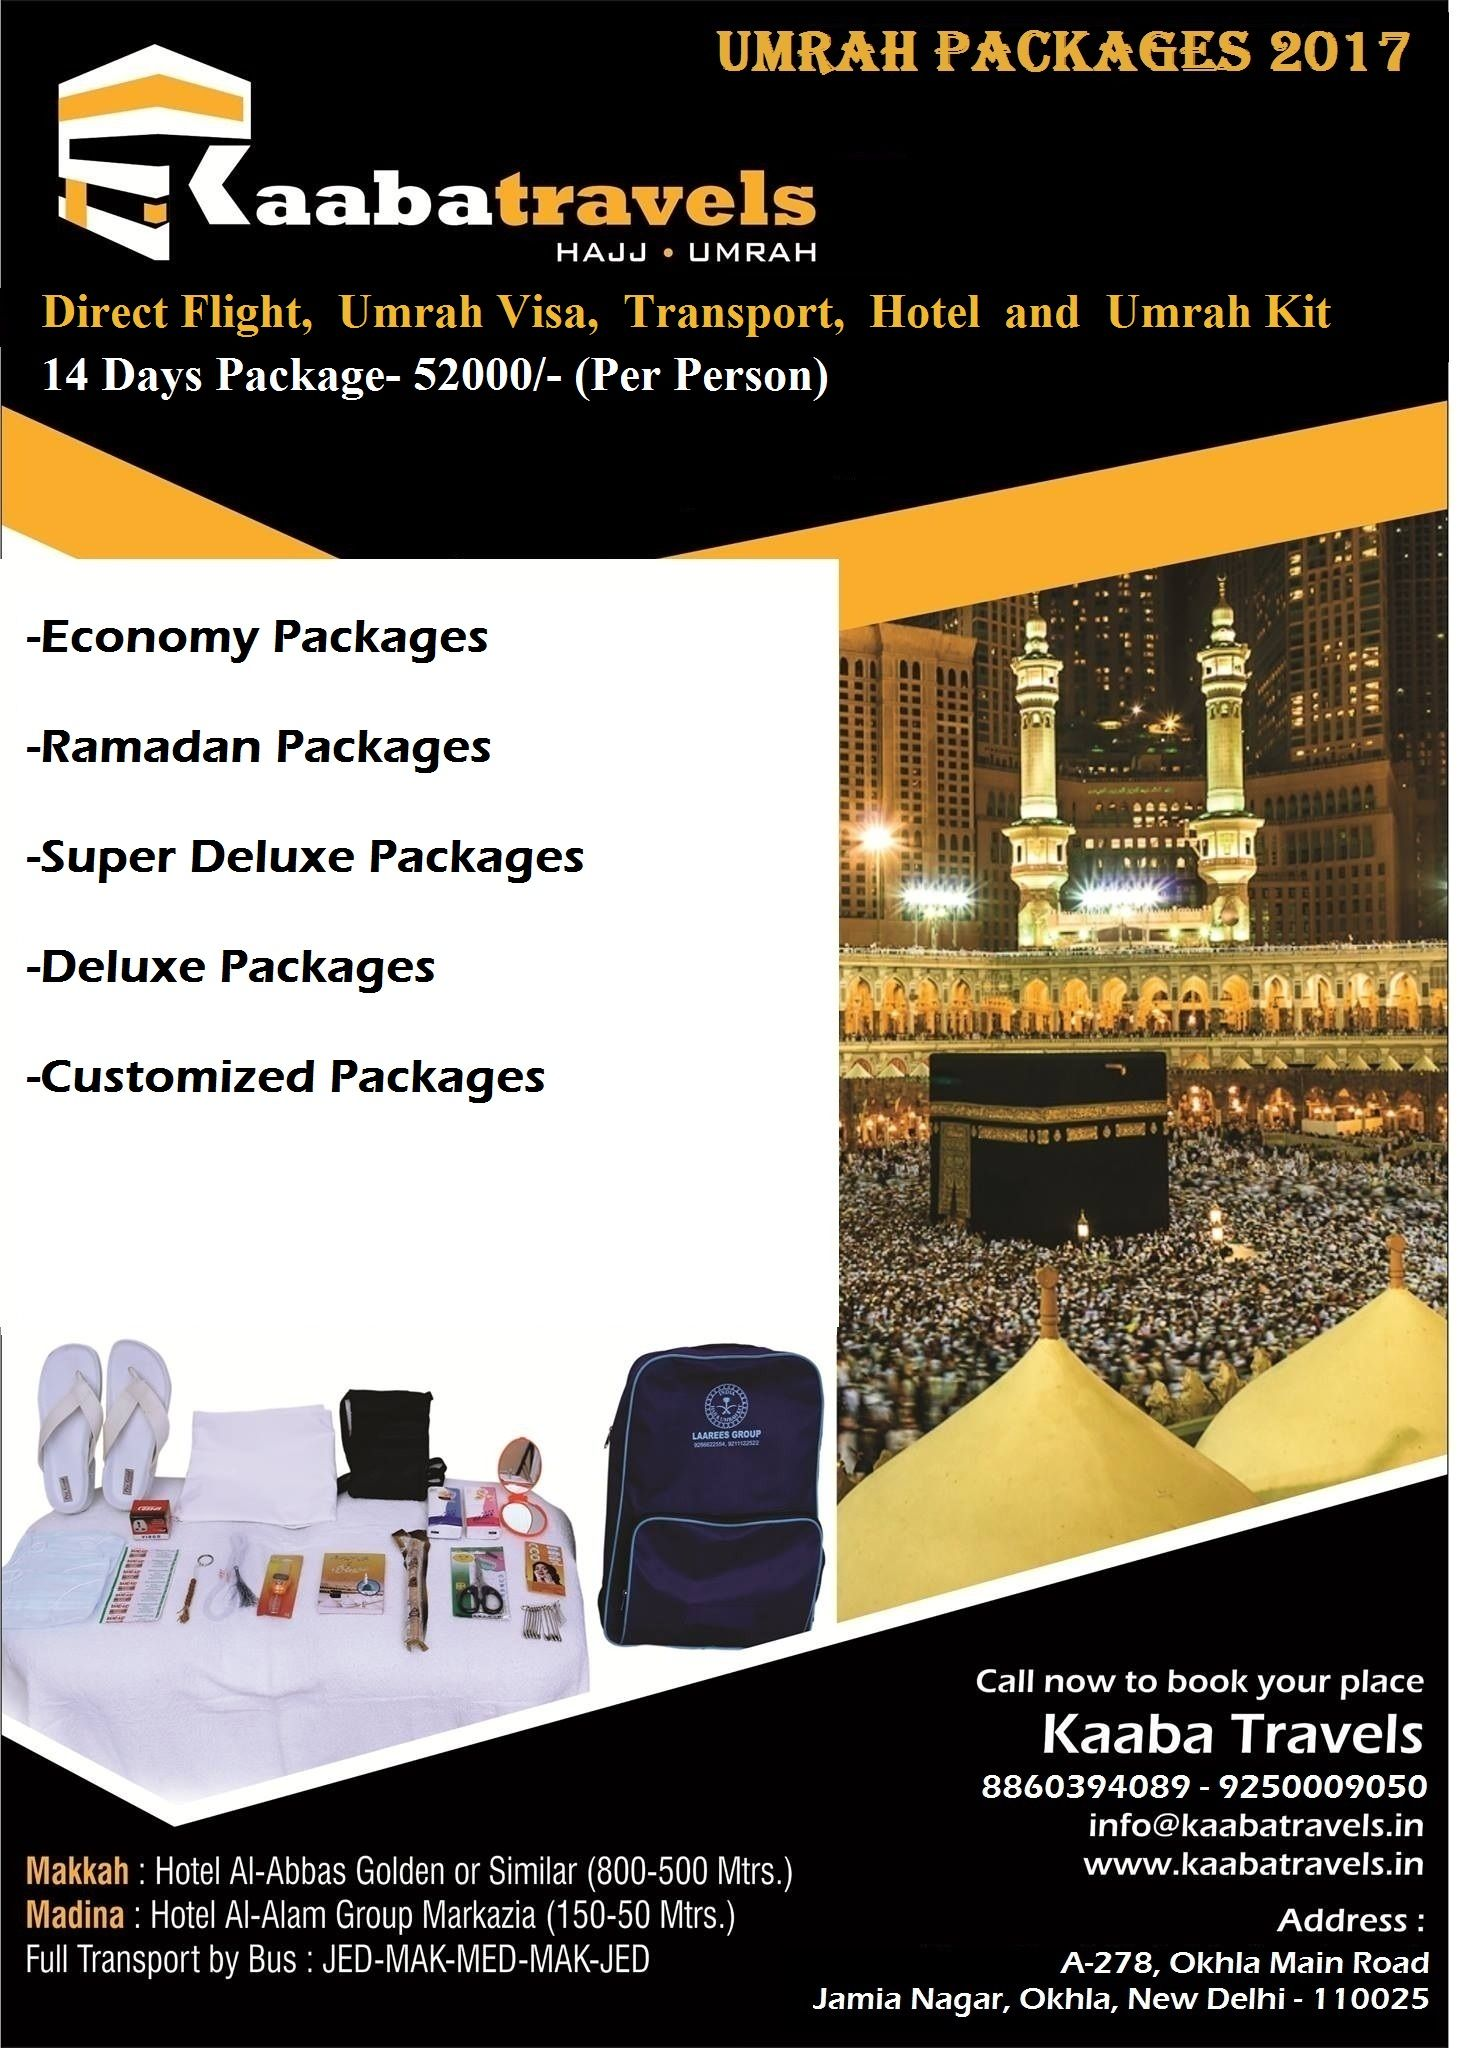 The Best Hajj & Umrah and Packages In Delhi NCR